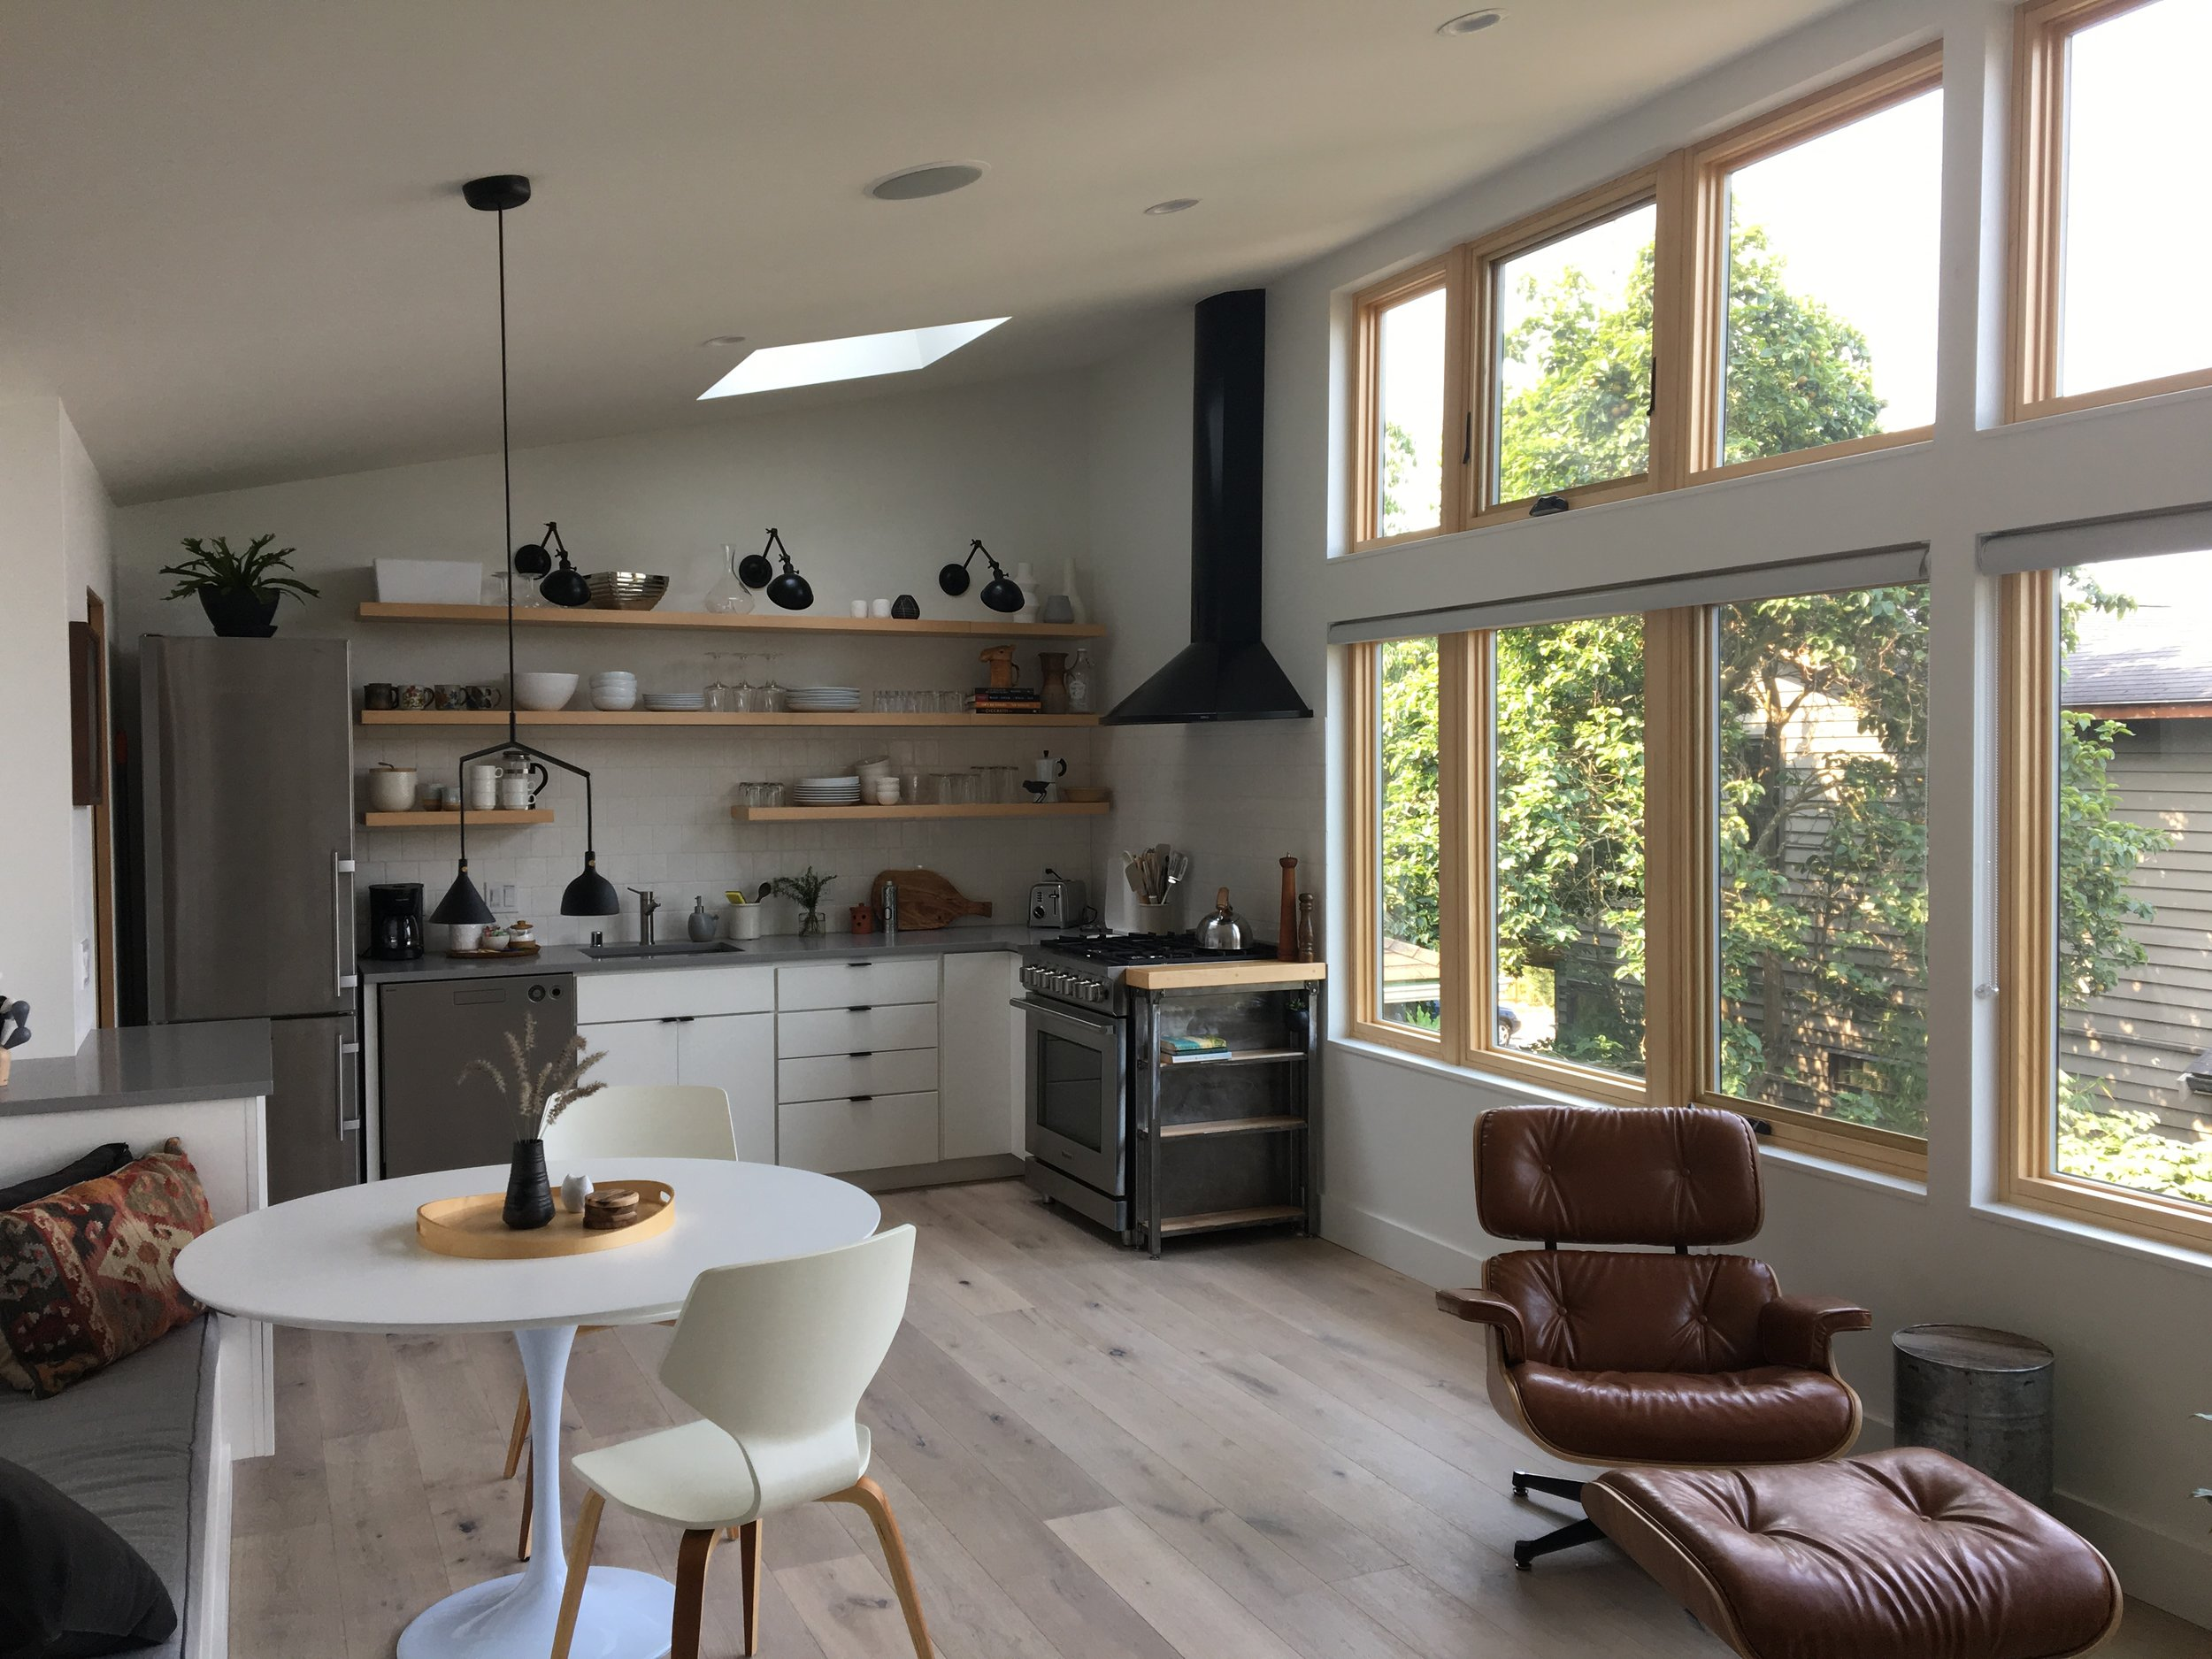 Steelaway Cottage, by CAST architecture 2018